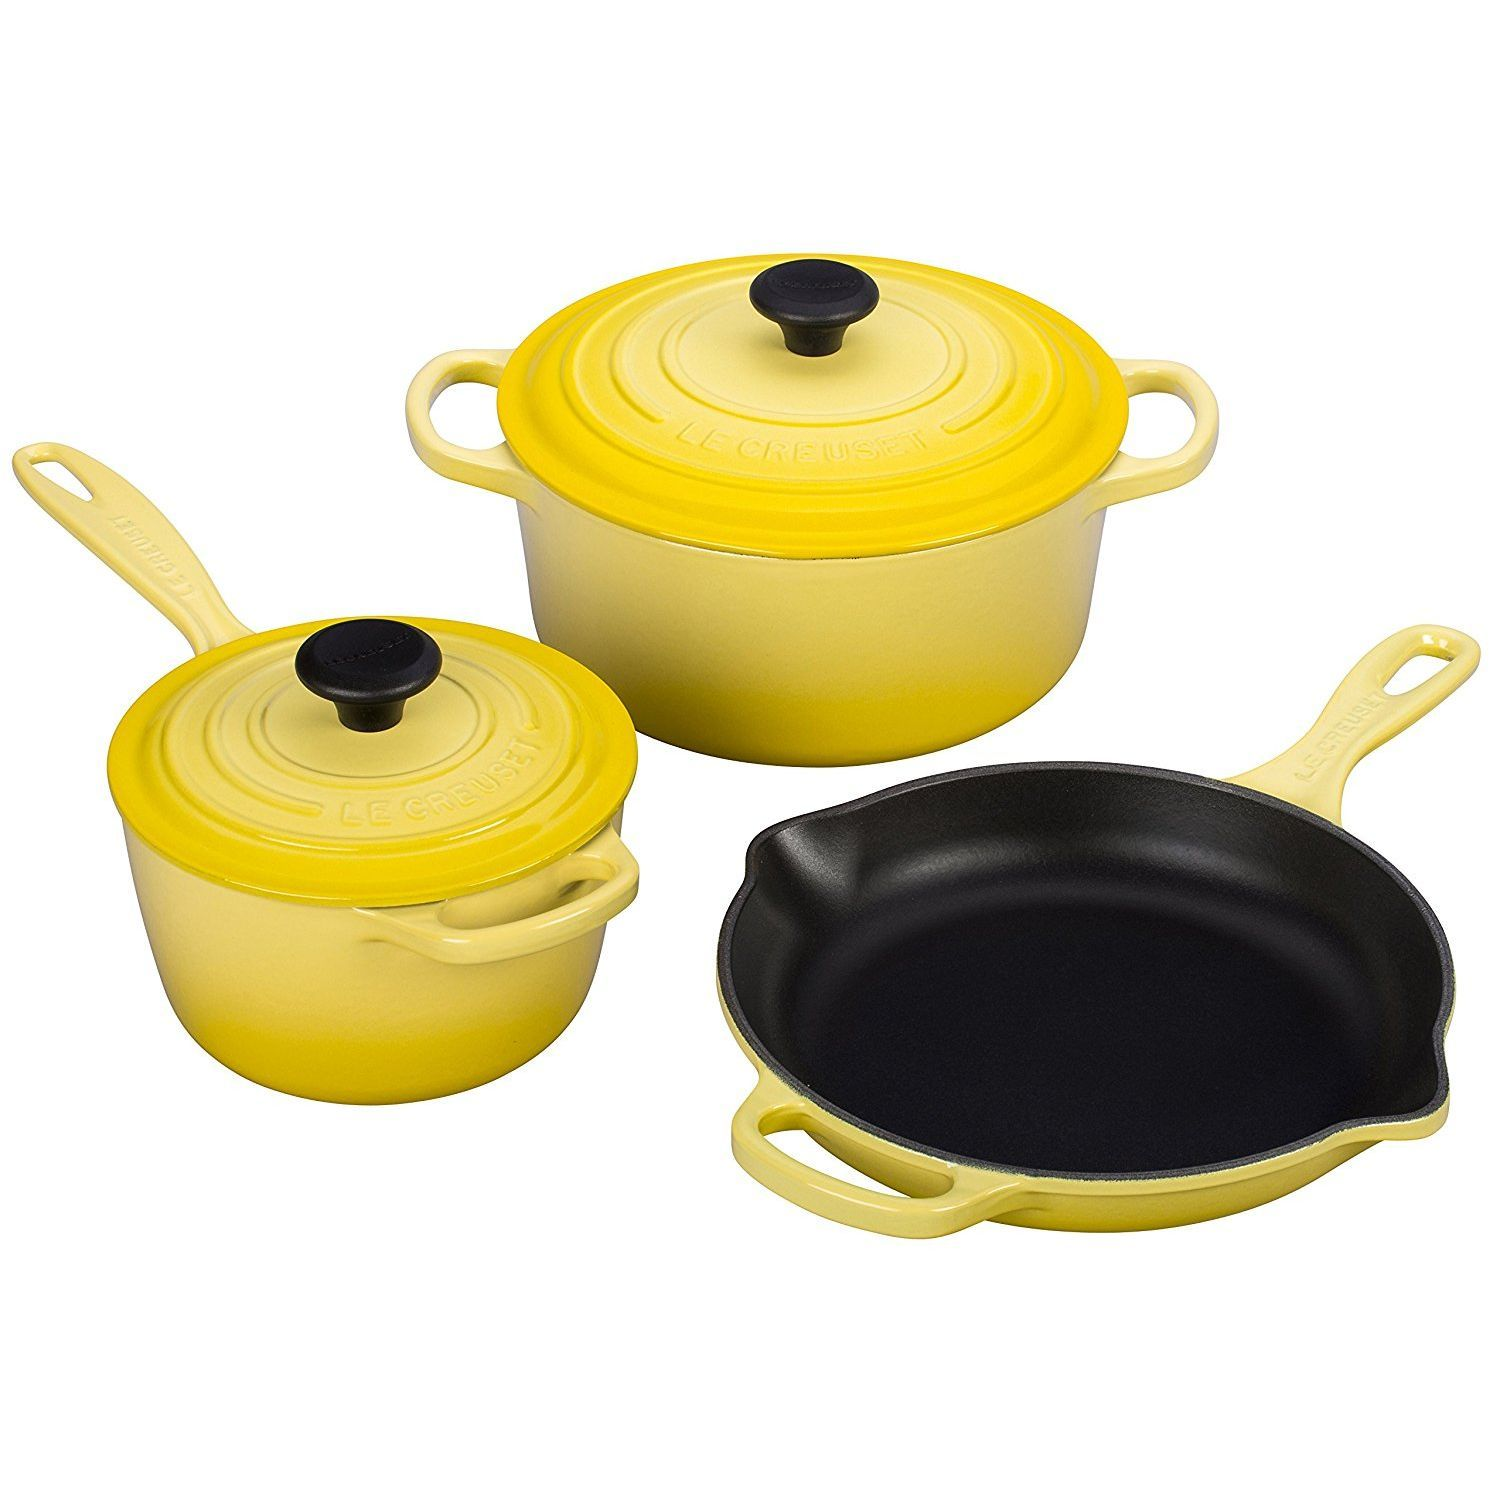 Le Creuset of America 5 Piece Signature Enameled Cast Iron ...